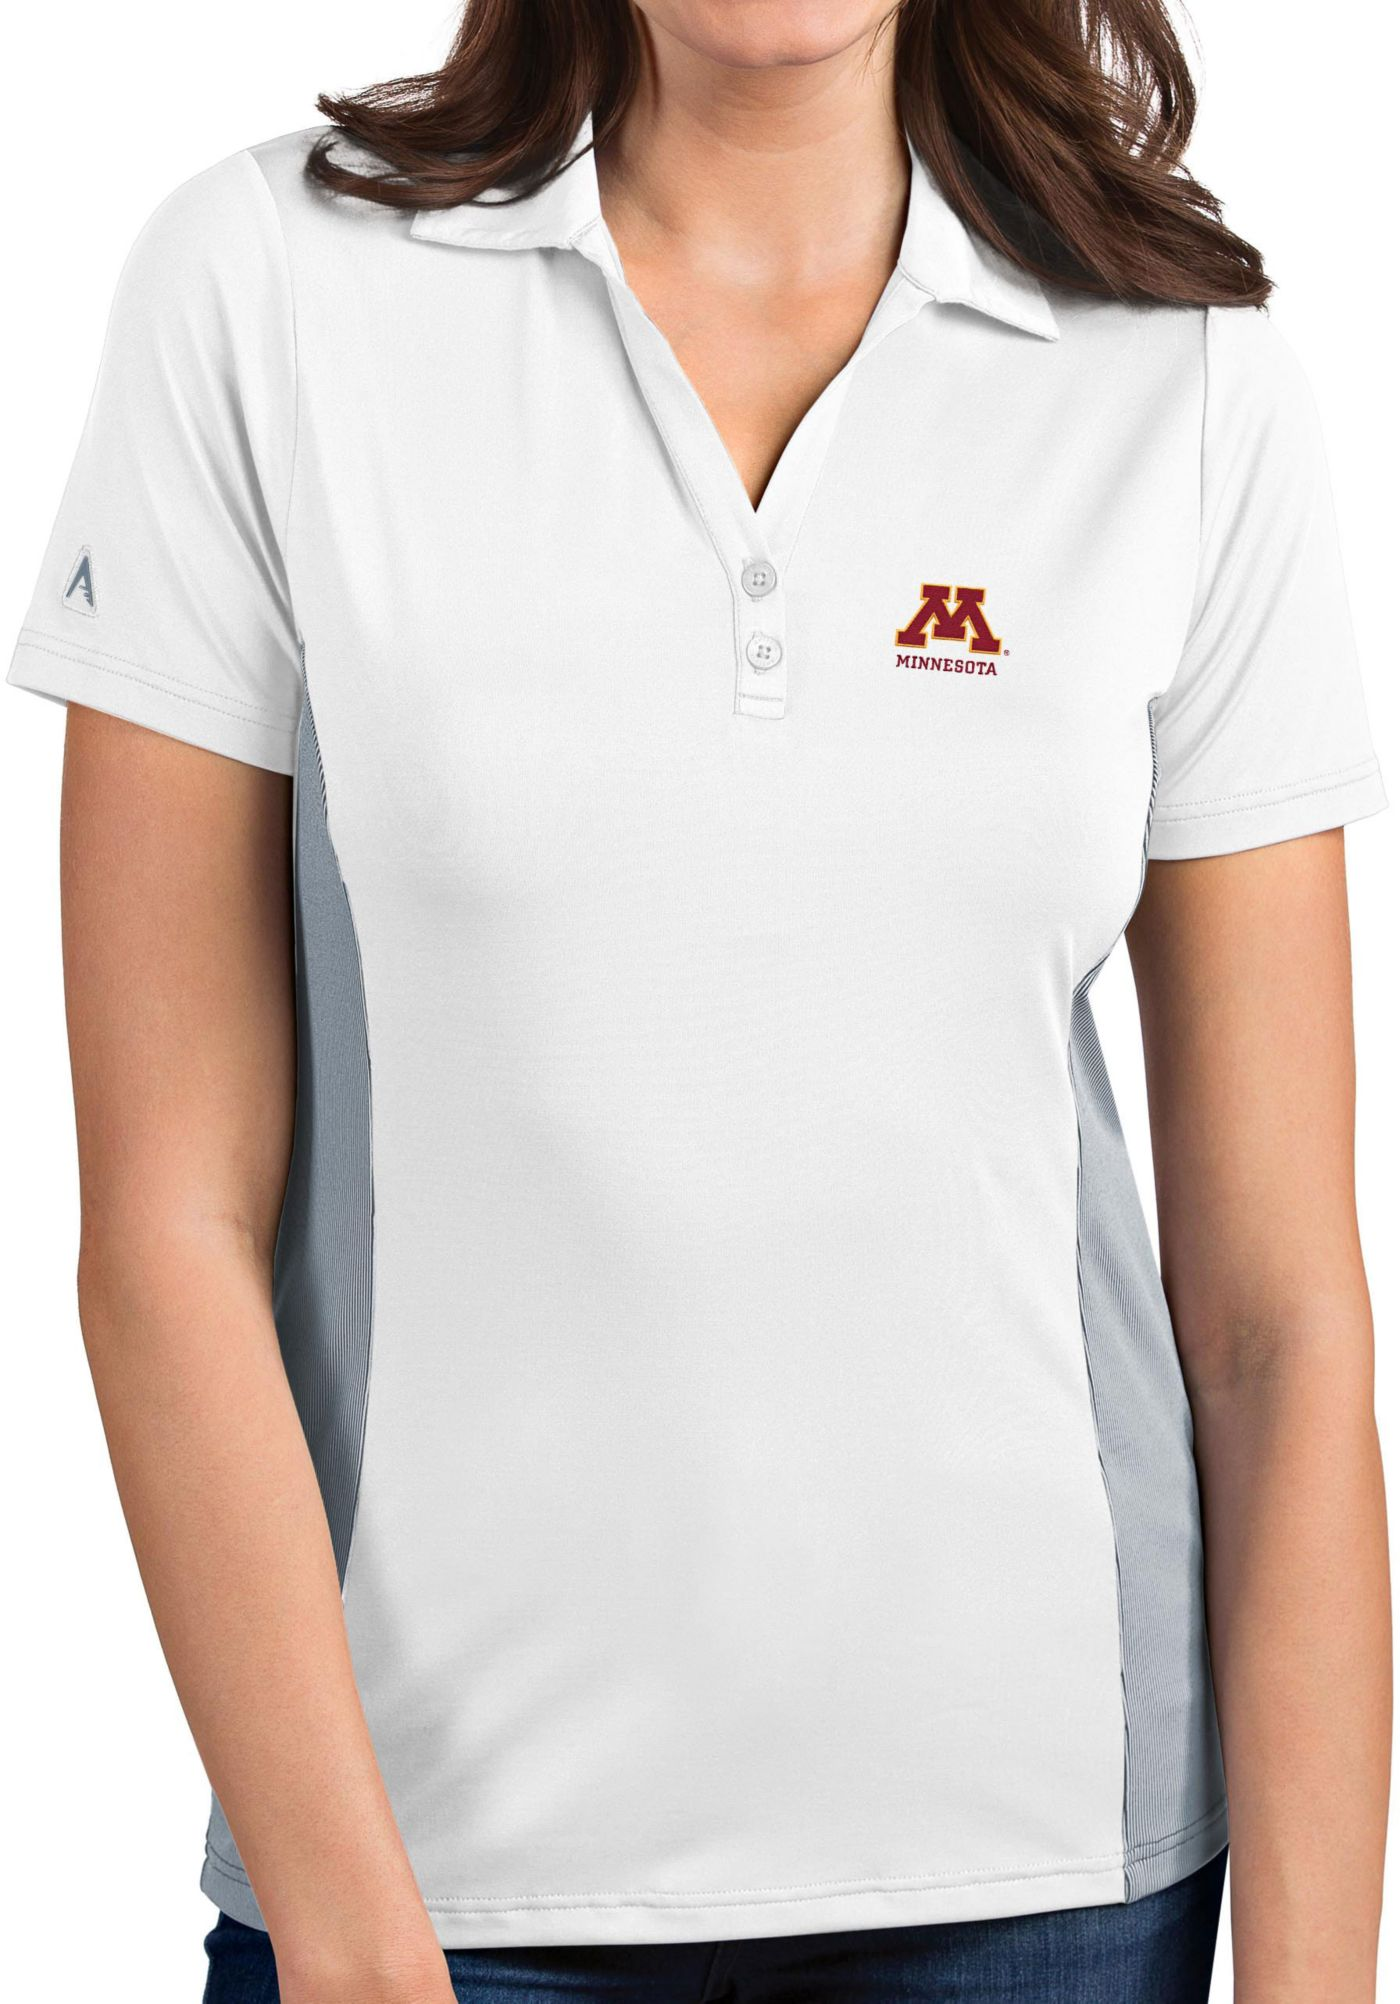 Antigua Women's Minnesota Golden Gophers Venture White Polo